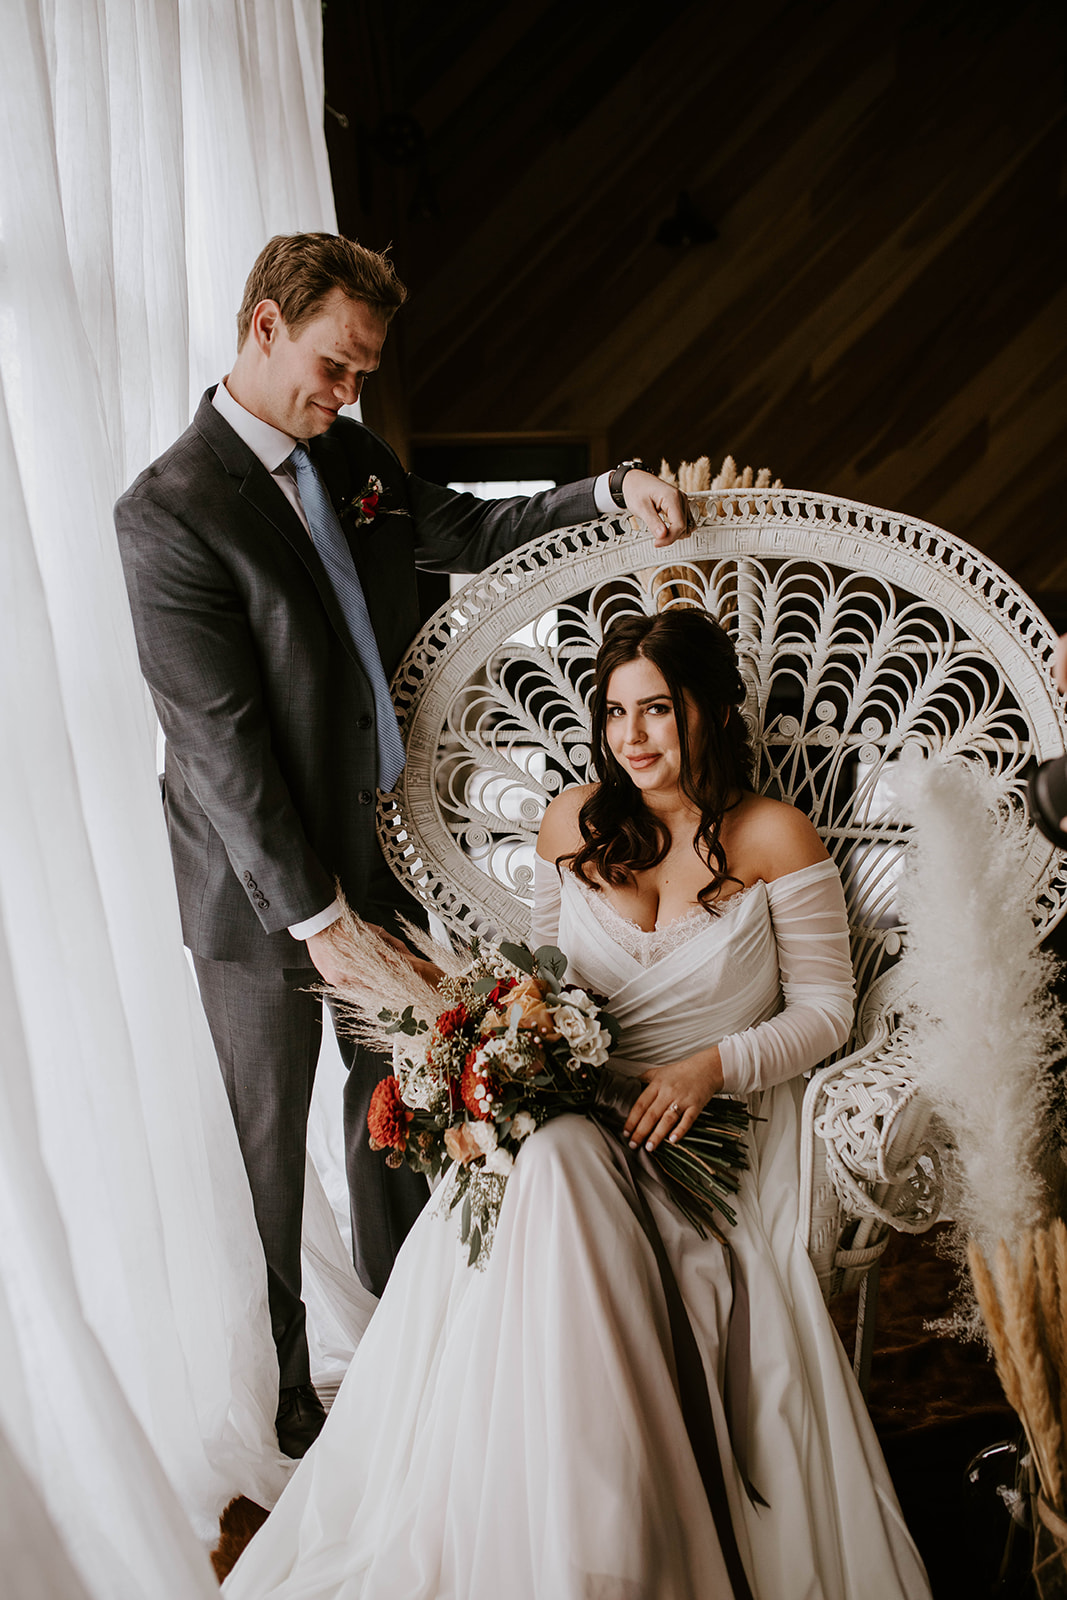 Wedding photography: Surprise Vow Renewal by Tara Winstead Photography featured on Nashville Bride Guide